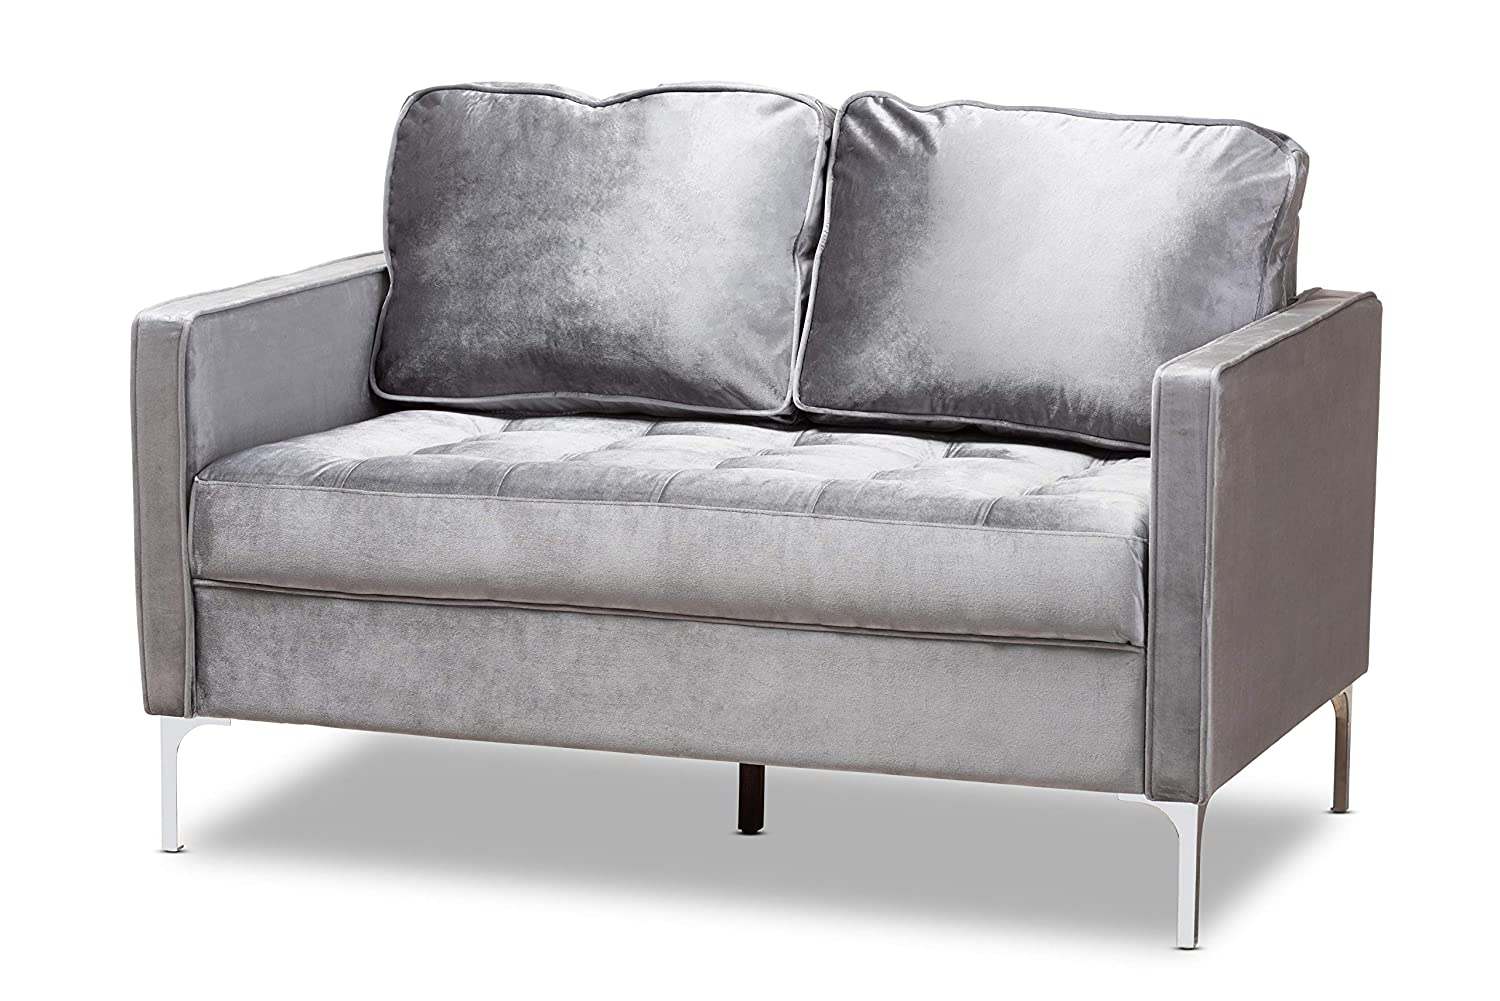 Amazon.com: Baxton Studio 150-8344-AMZ Loveseats, Grey ...